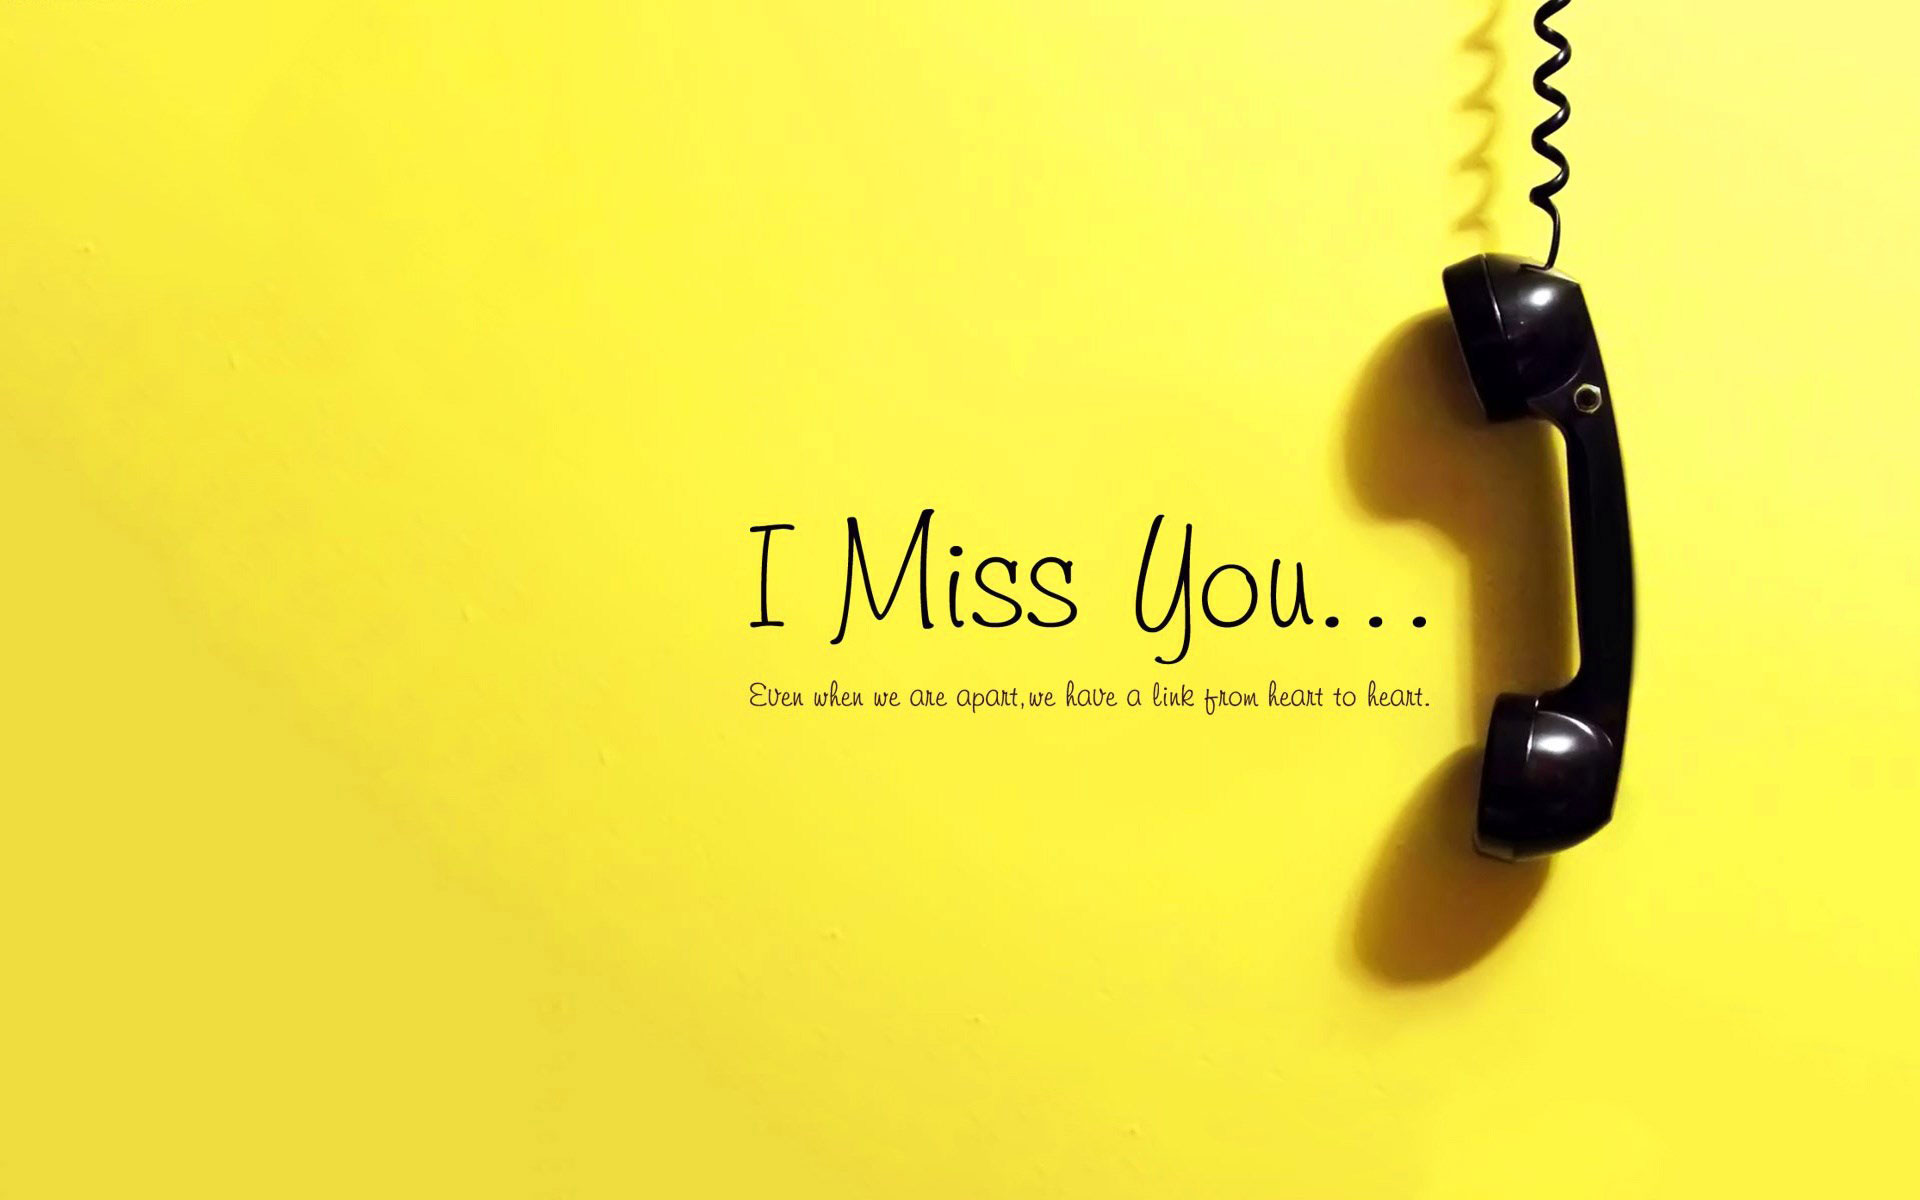 miss u images with quotes